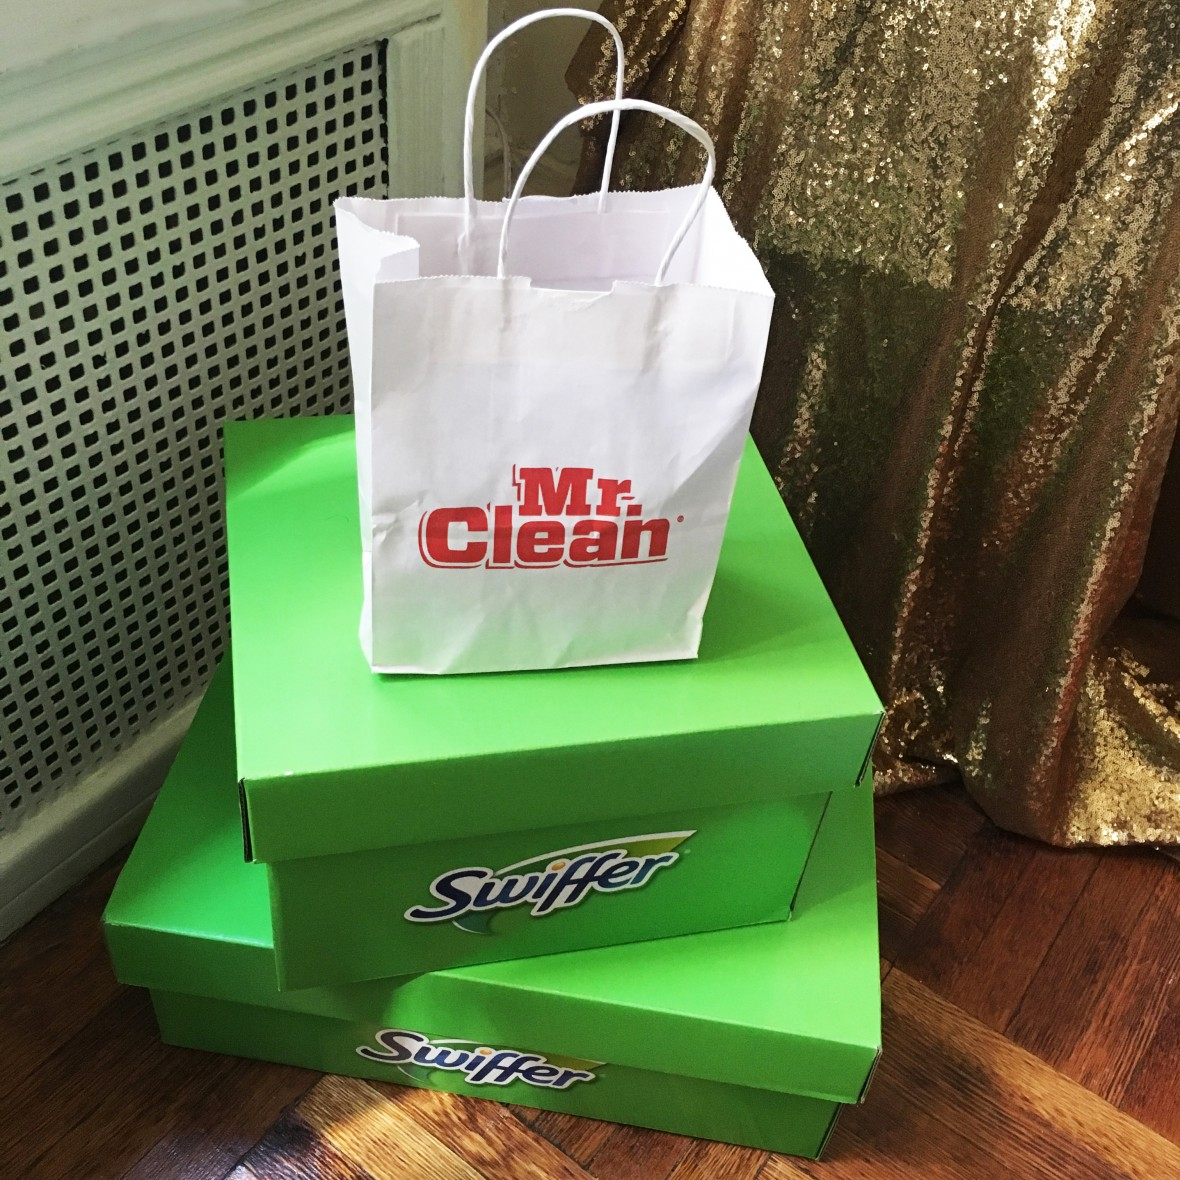 swiffer and mr clean products